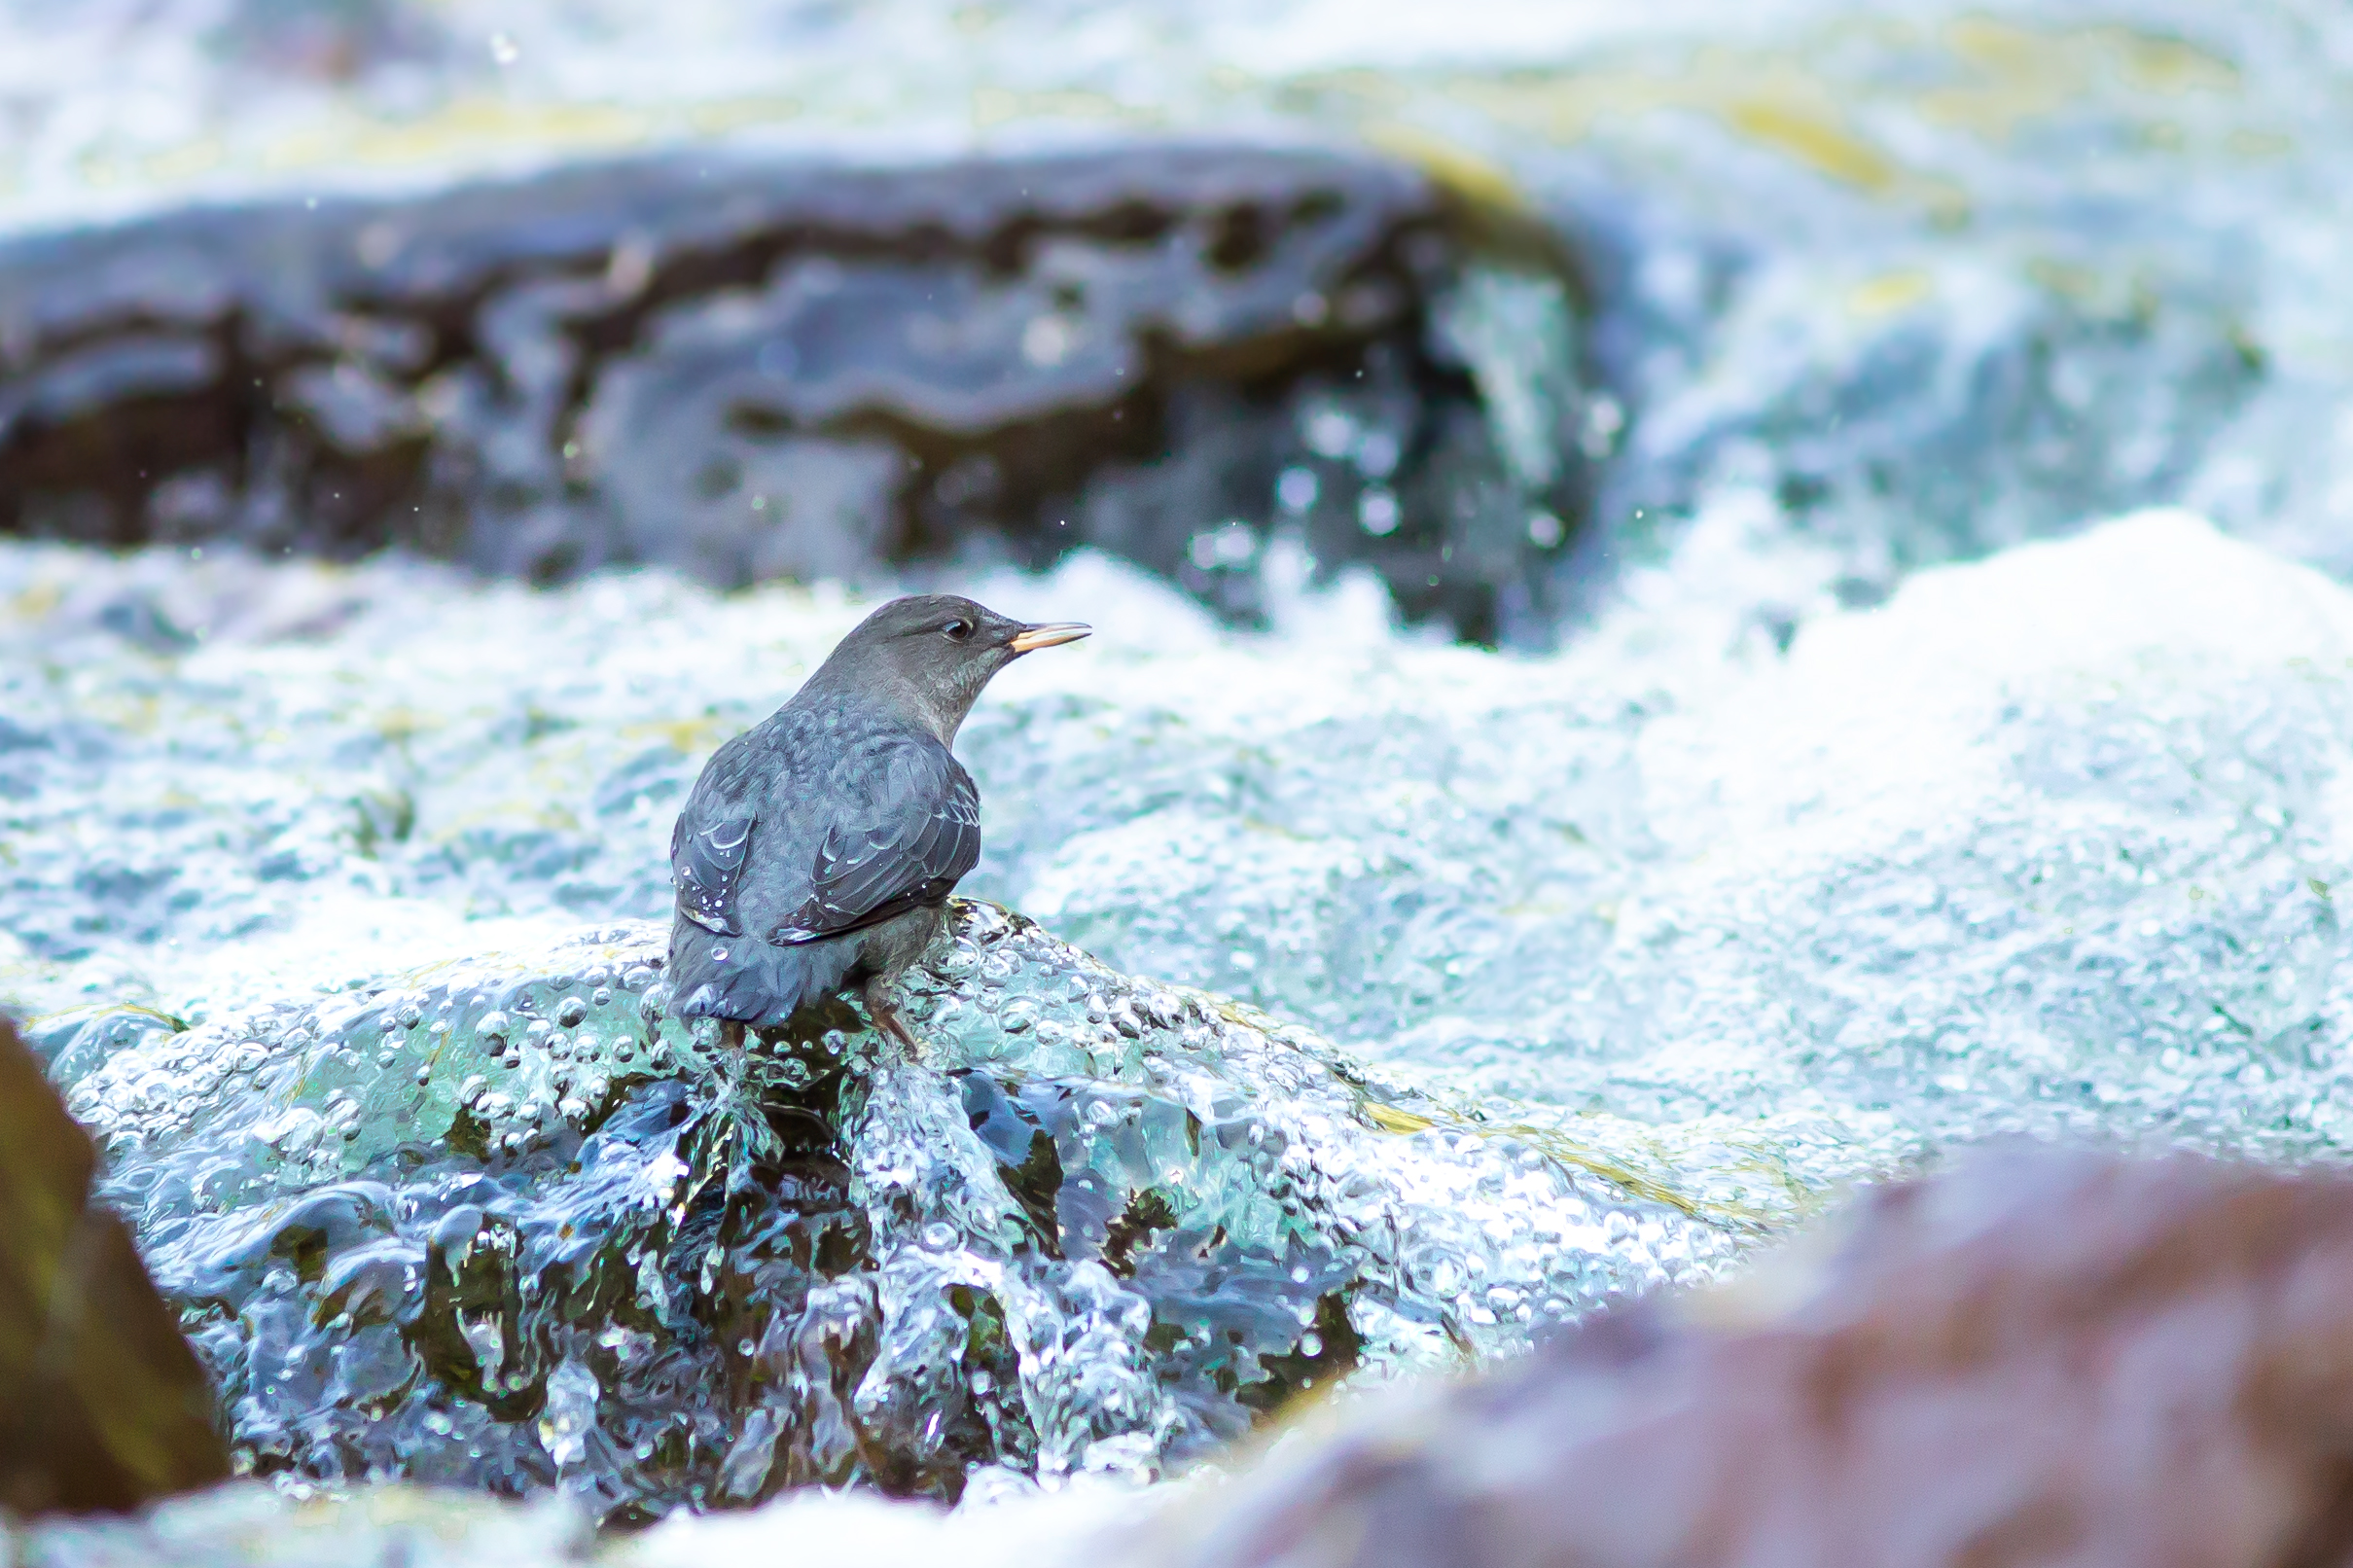 Dipper-Bubbles-Saved-for-WEb-Landscape-crop-ahe.jpg